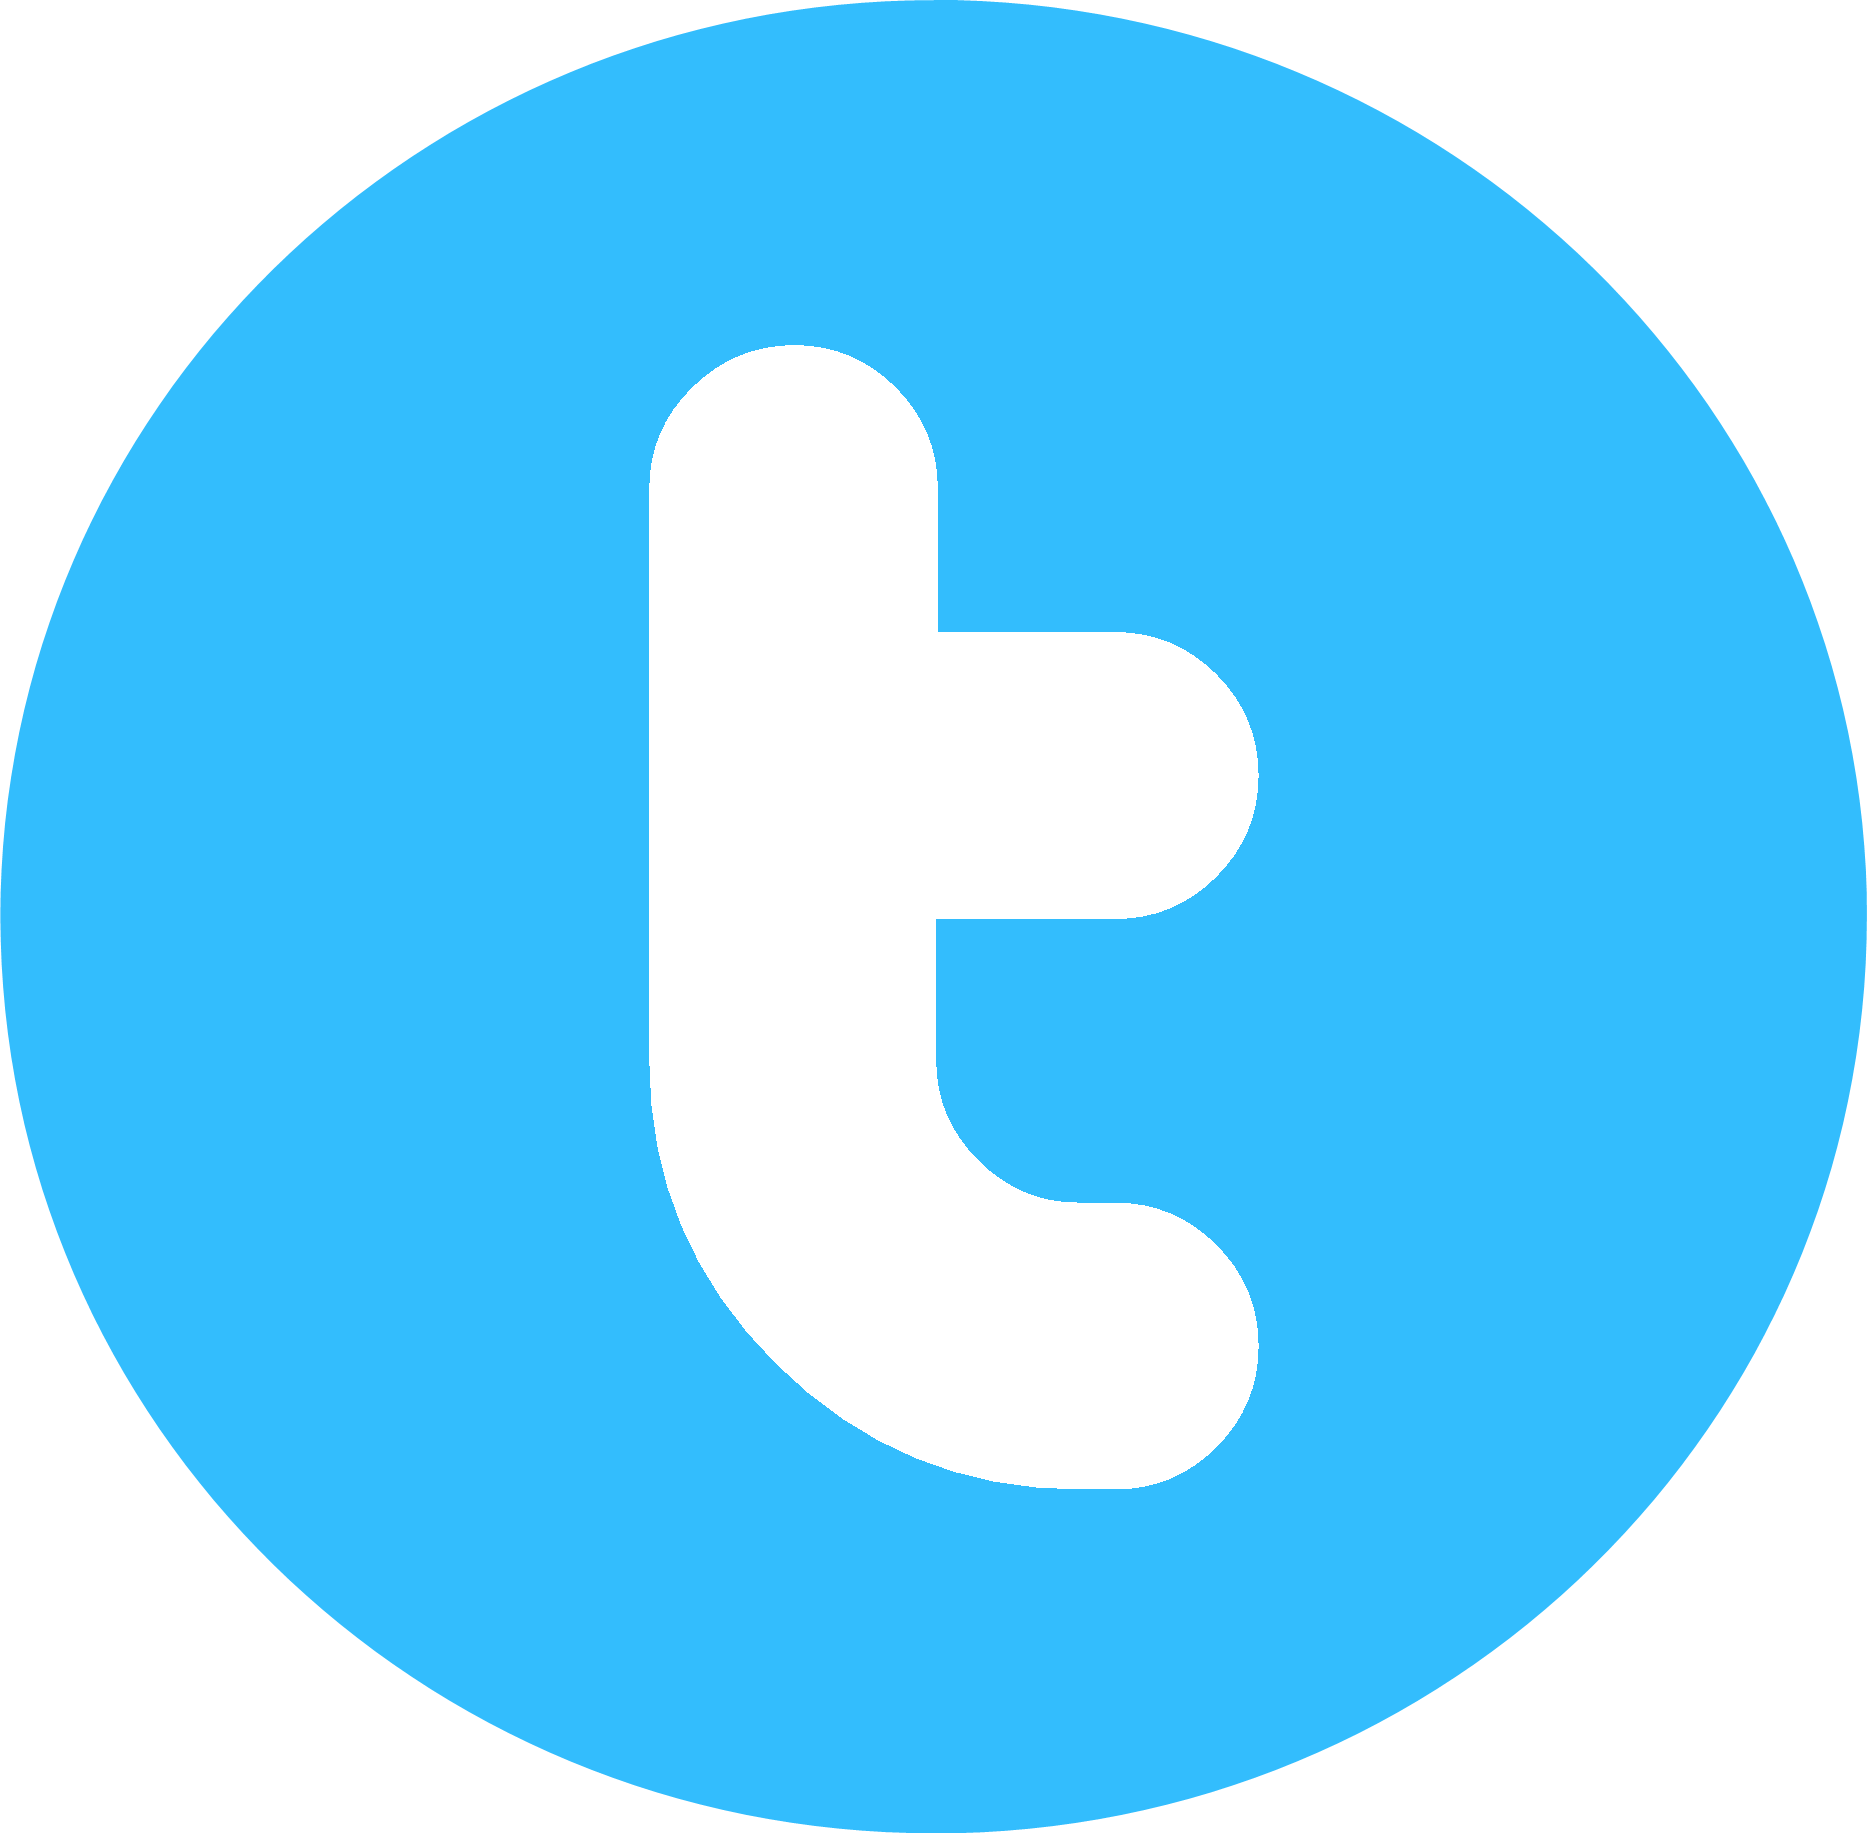 twitter-logo-transparent-2